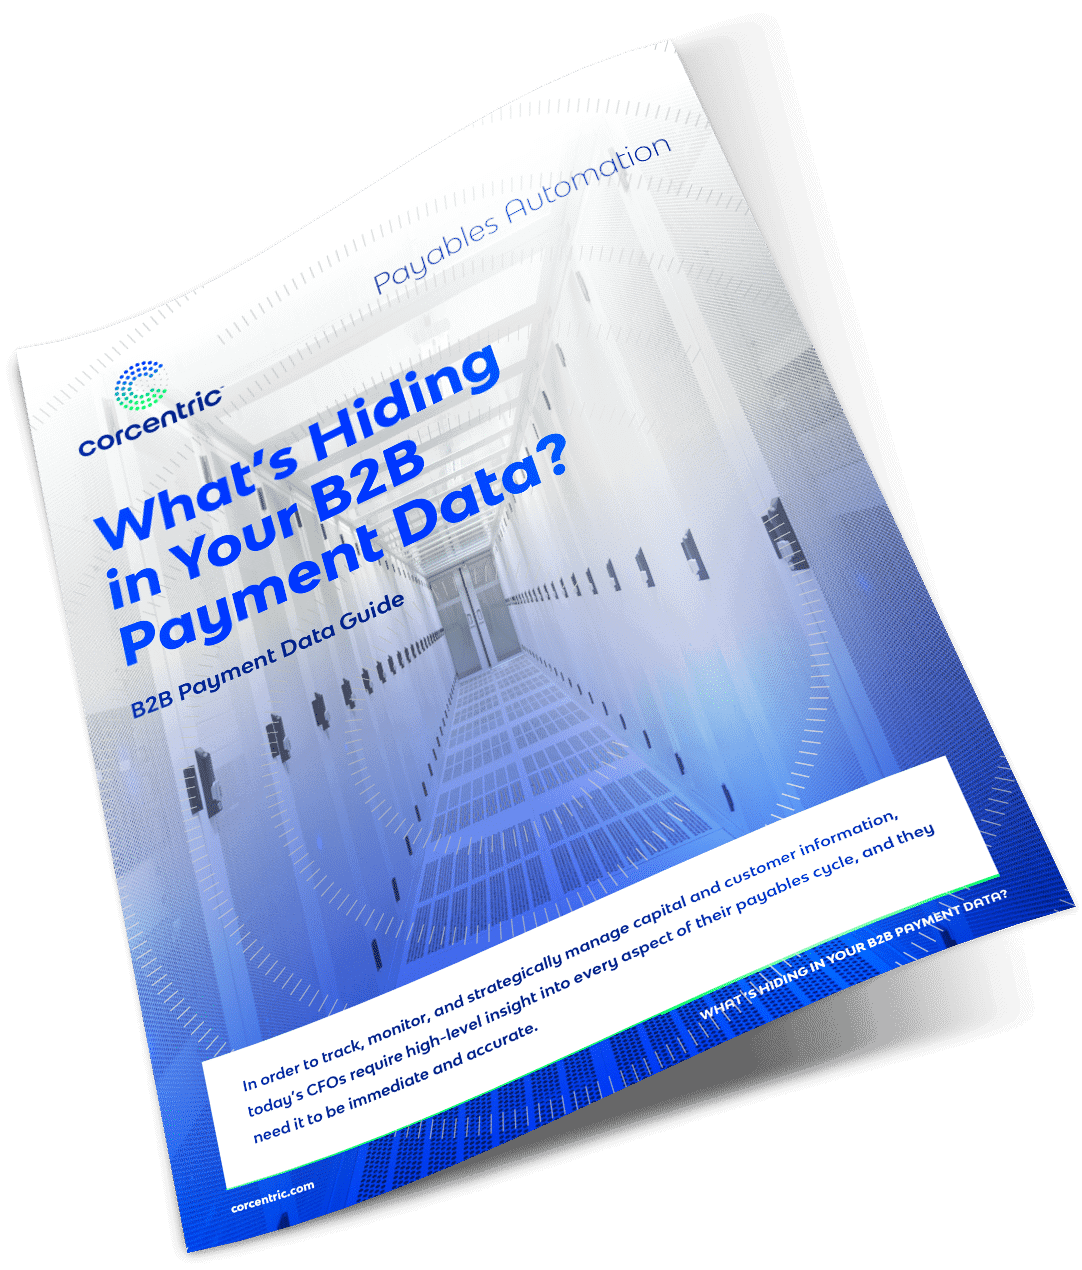 white-paper-whats-hiding-in-your-b2b-payment-data-asset